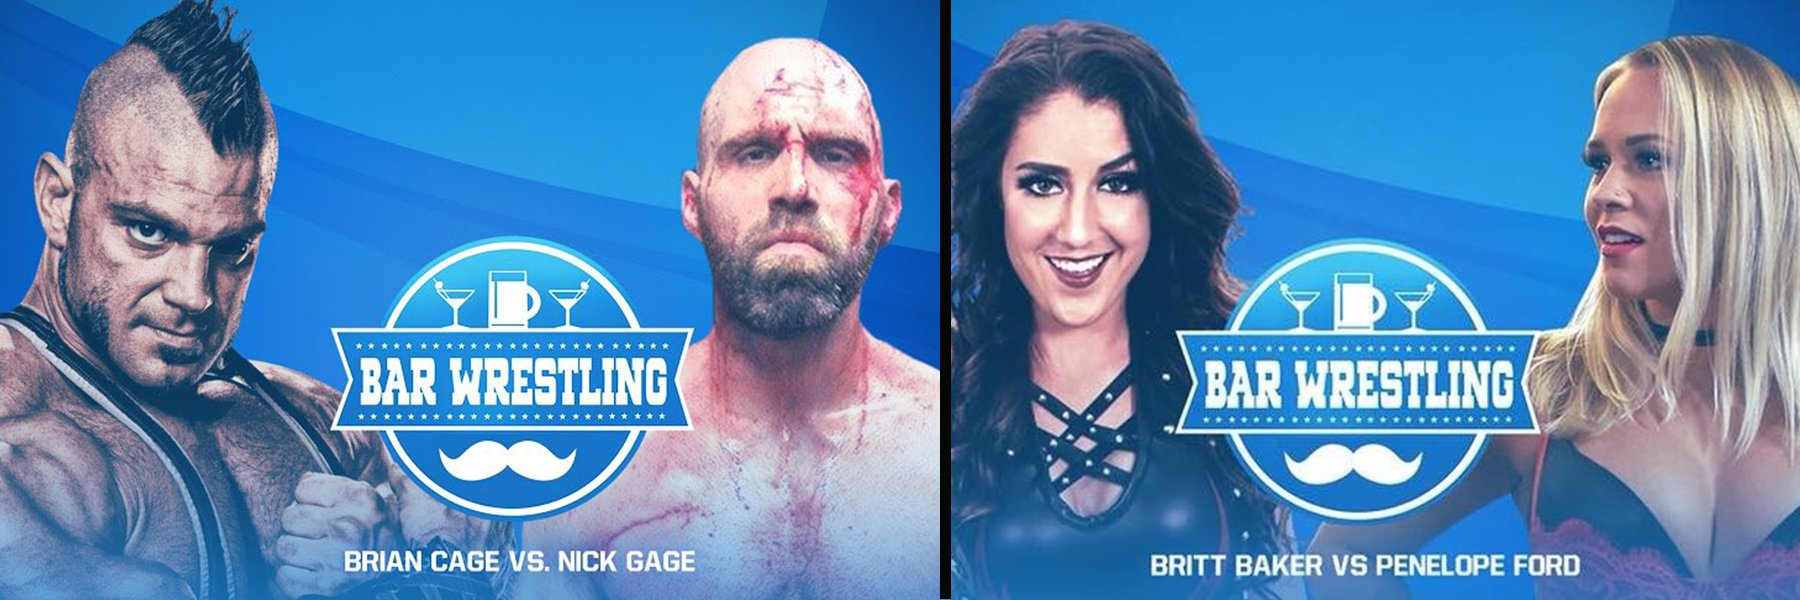 New Bar Wrestling! Brian Cage vs Nick Gage, Britt Baker vs Penelope Ford